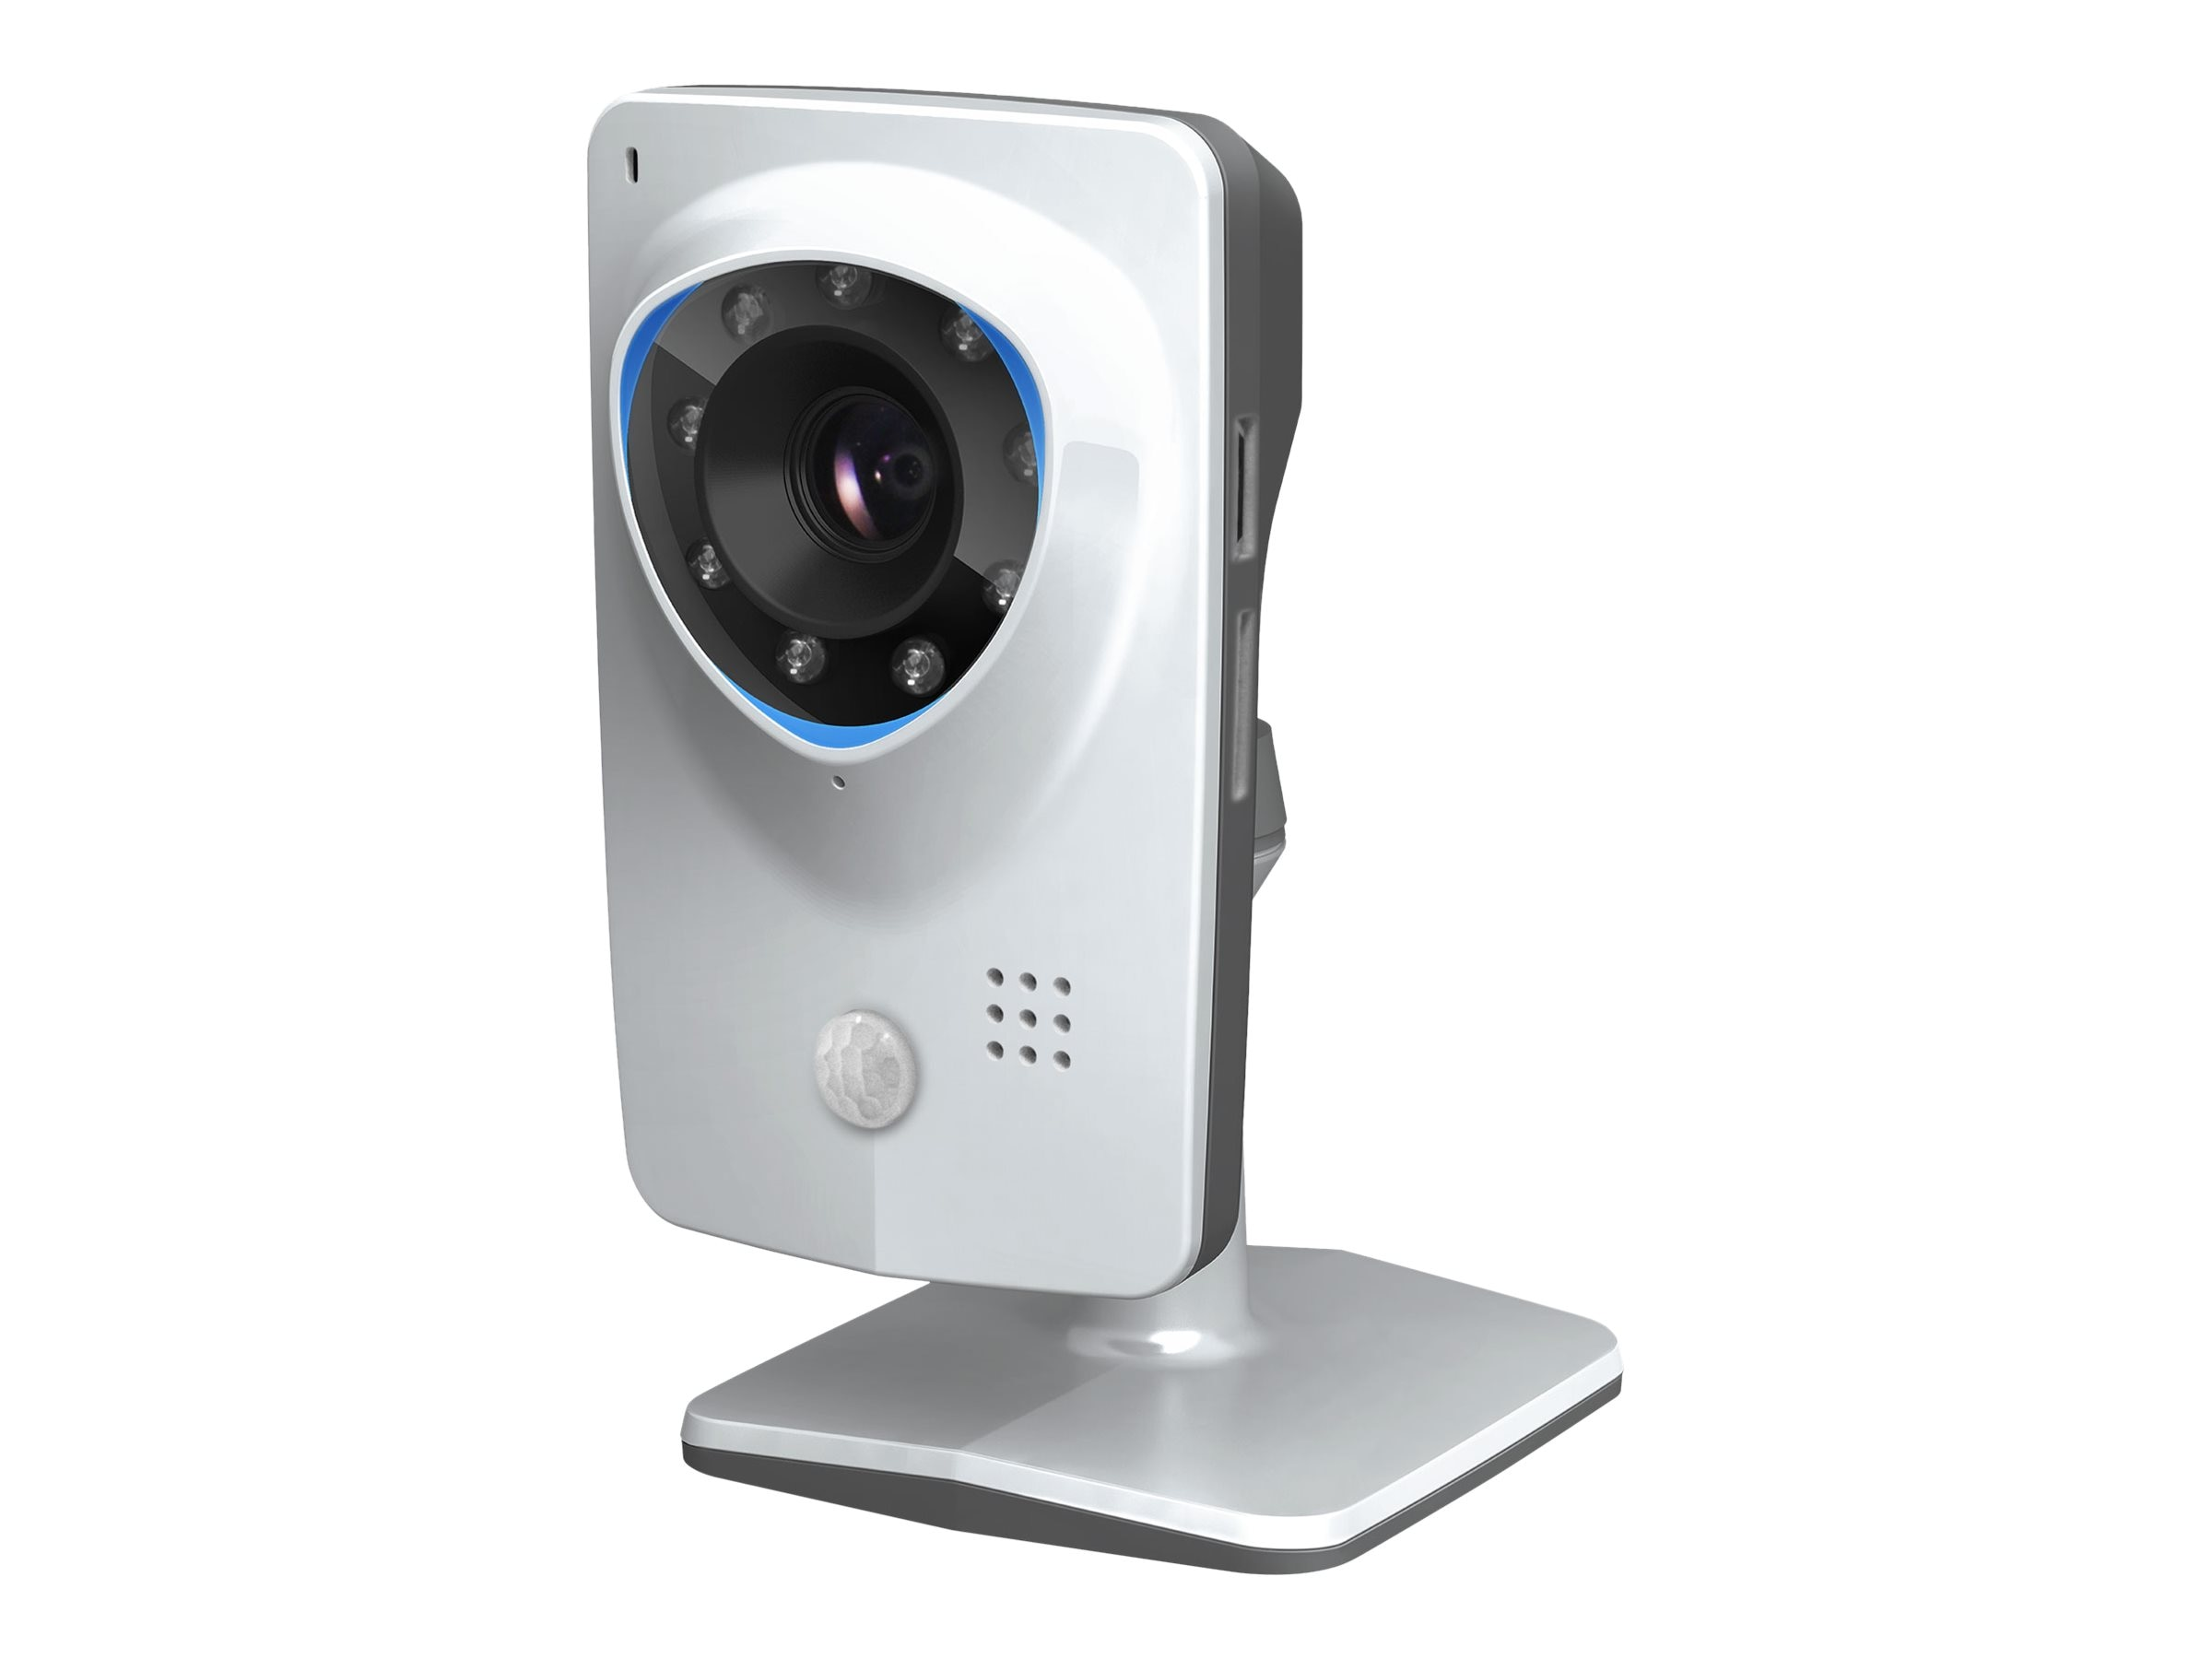 Swann 720p HD Plug & Play Wi-Fi Security Camera with Smart Alerts